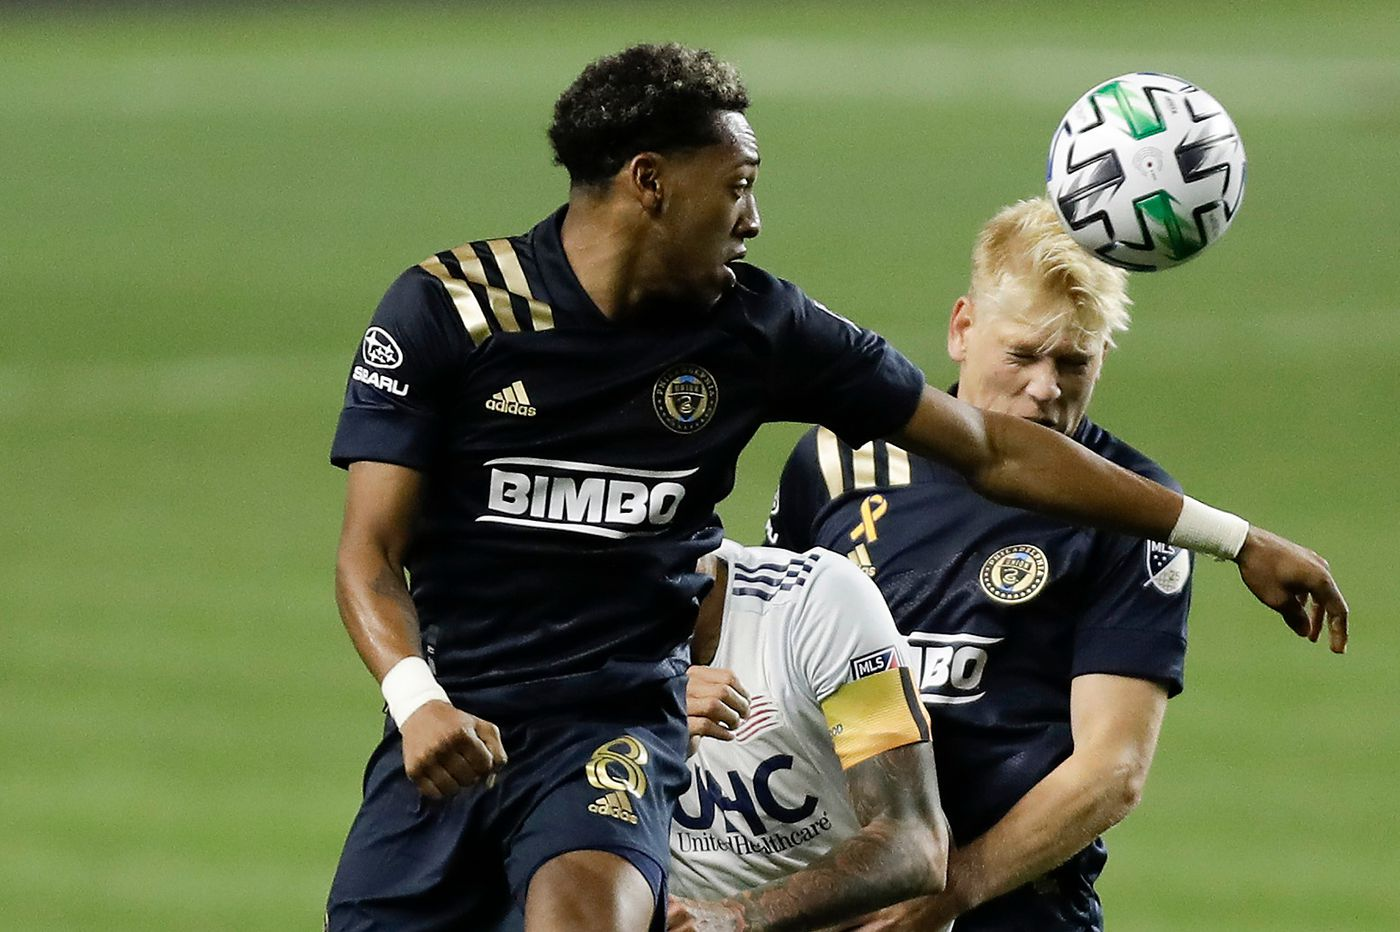 Soccer on TV: Will the Union's José Andrés Martínez play for Venezuela in World Cup qualifying?